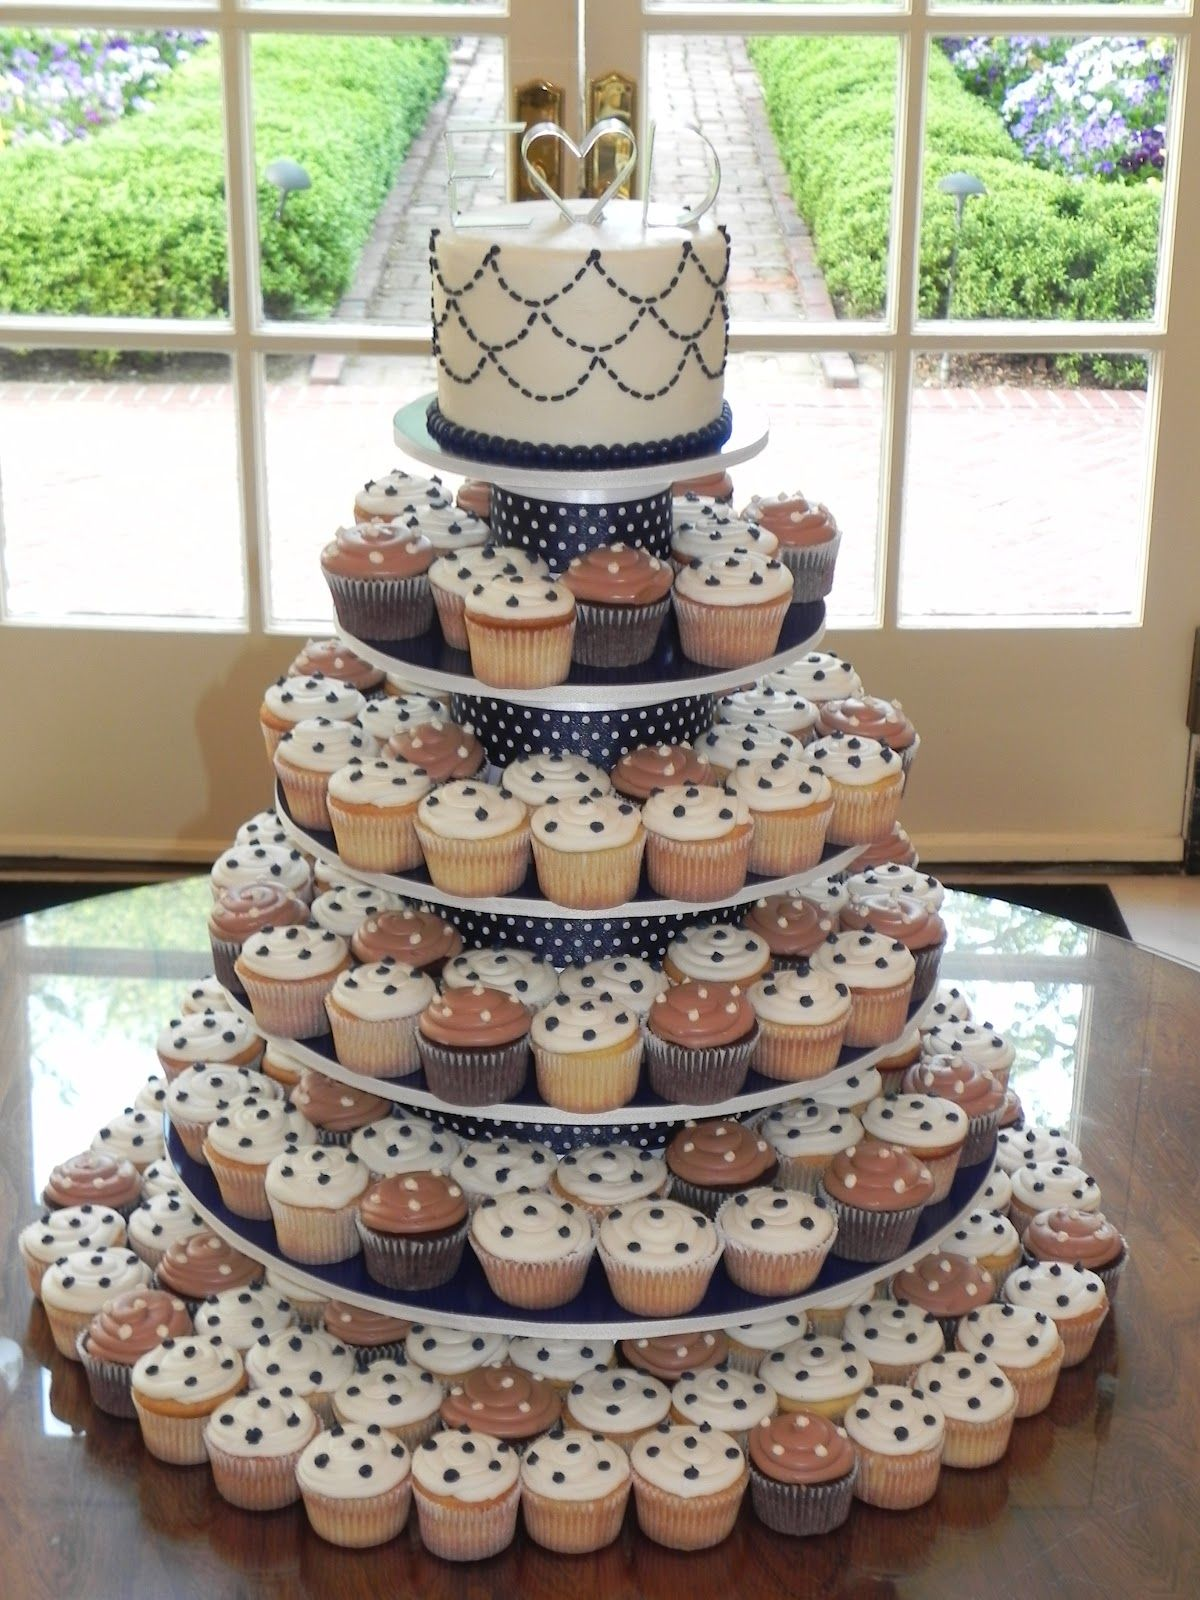 wedding cakes make of cupcakes cupcakes. Here was